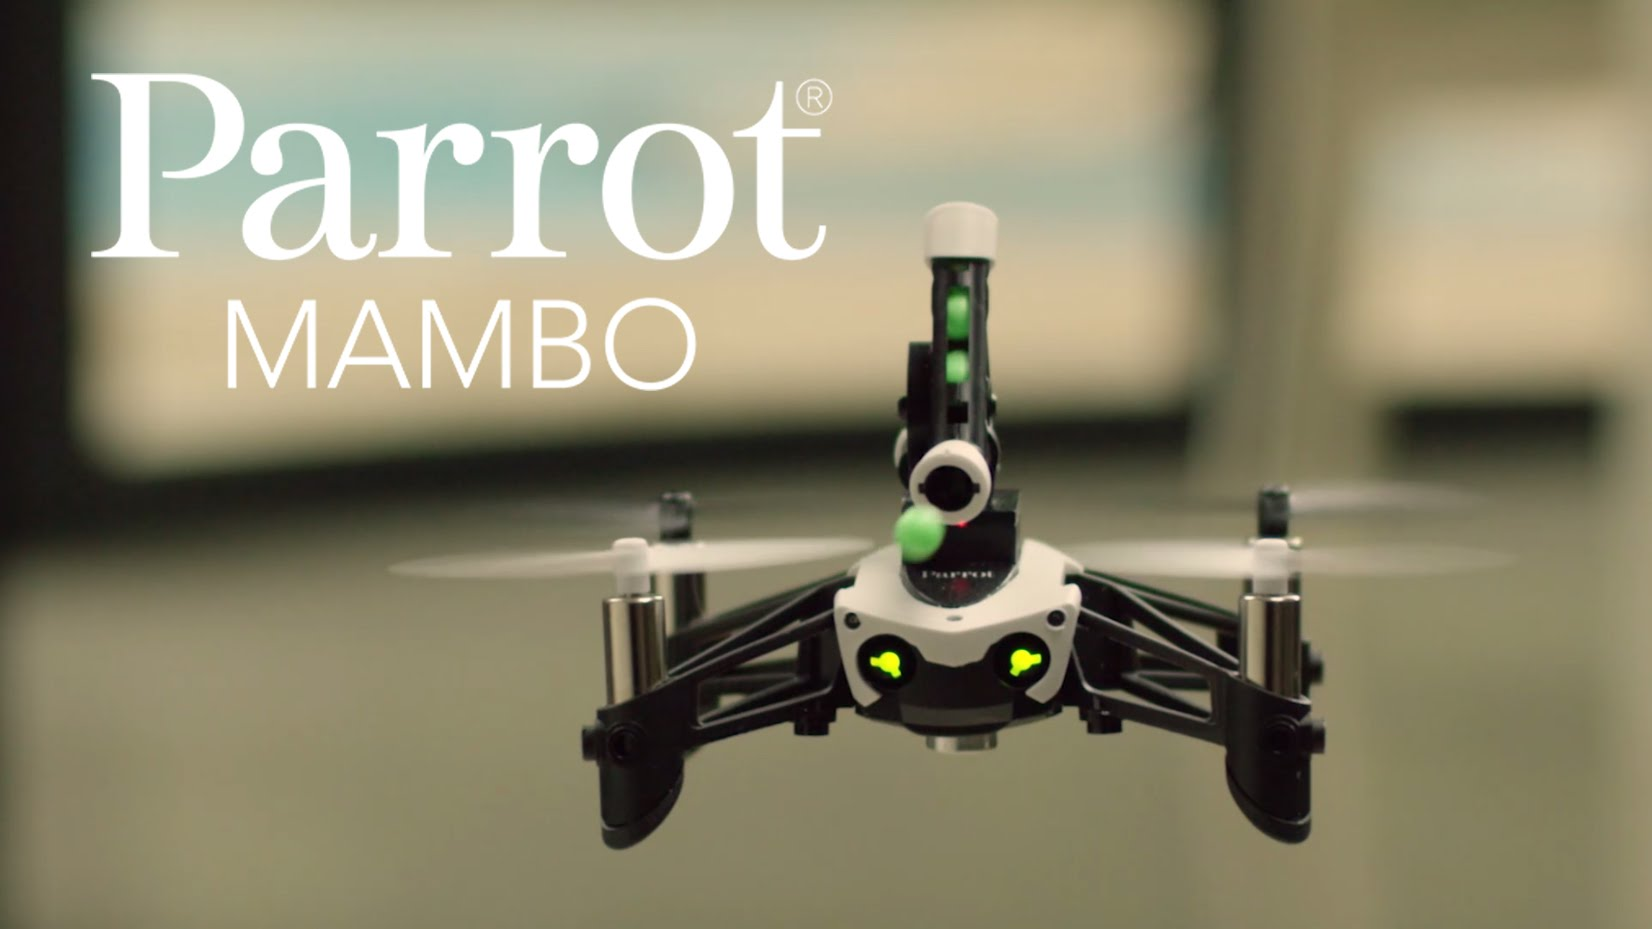 amazon parrot drone with Parrot Mambo Review 63700 on 878697 furthermore Best Drones together with Quadcopter Wallpaper furthermore Different Types Of Drones besides Endless Space 2 Sortira Dacces Anticipe 19 Mai 237101.